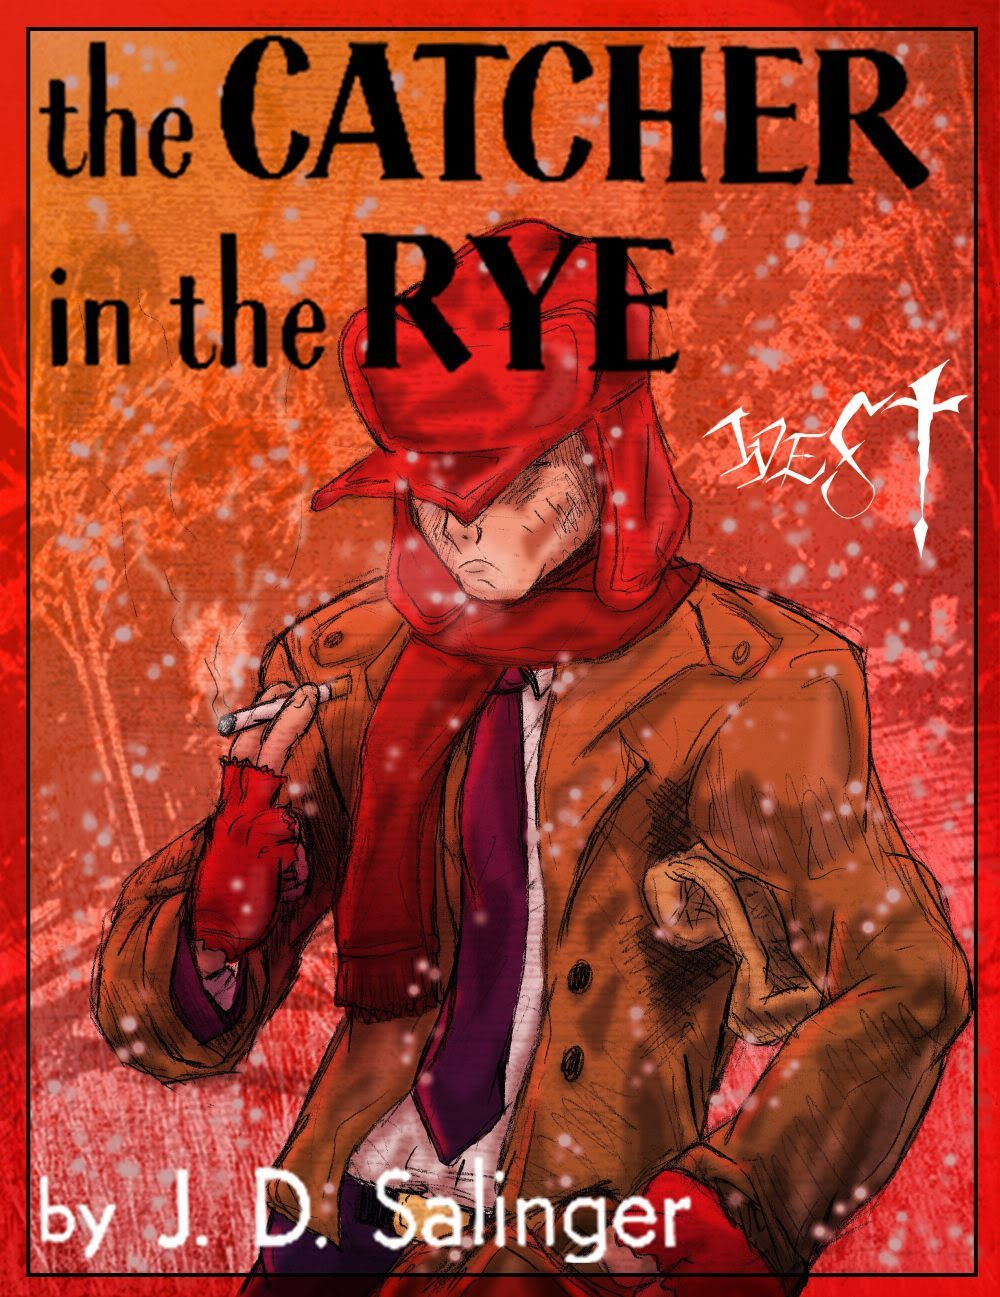 Catcher in the rye essay ideas